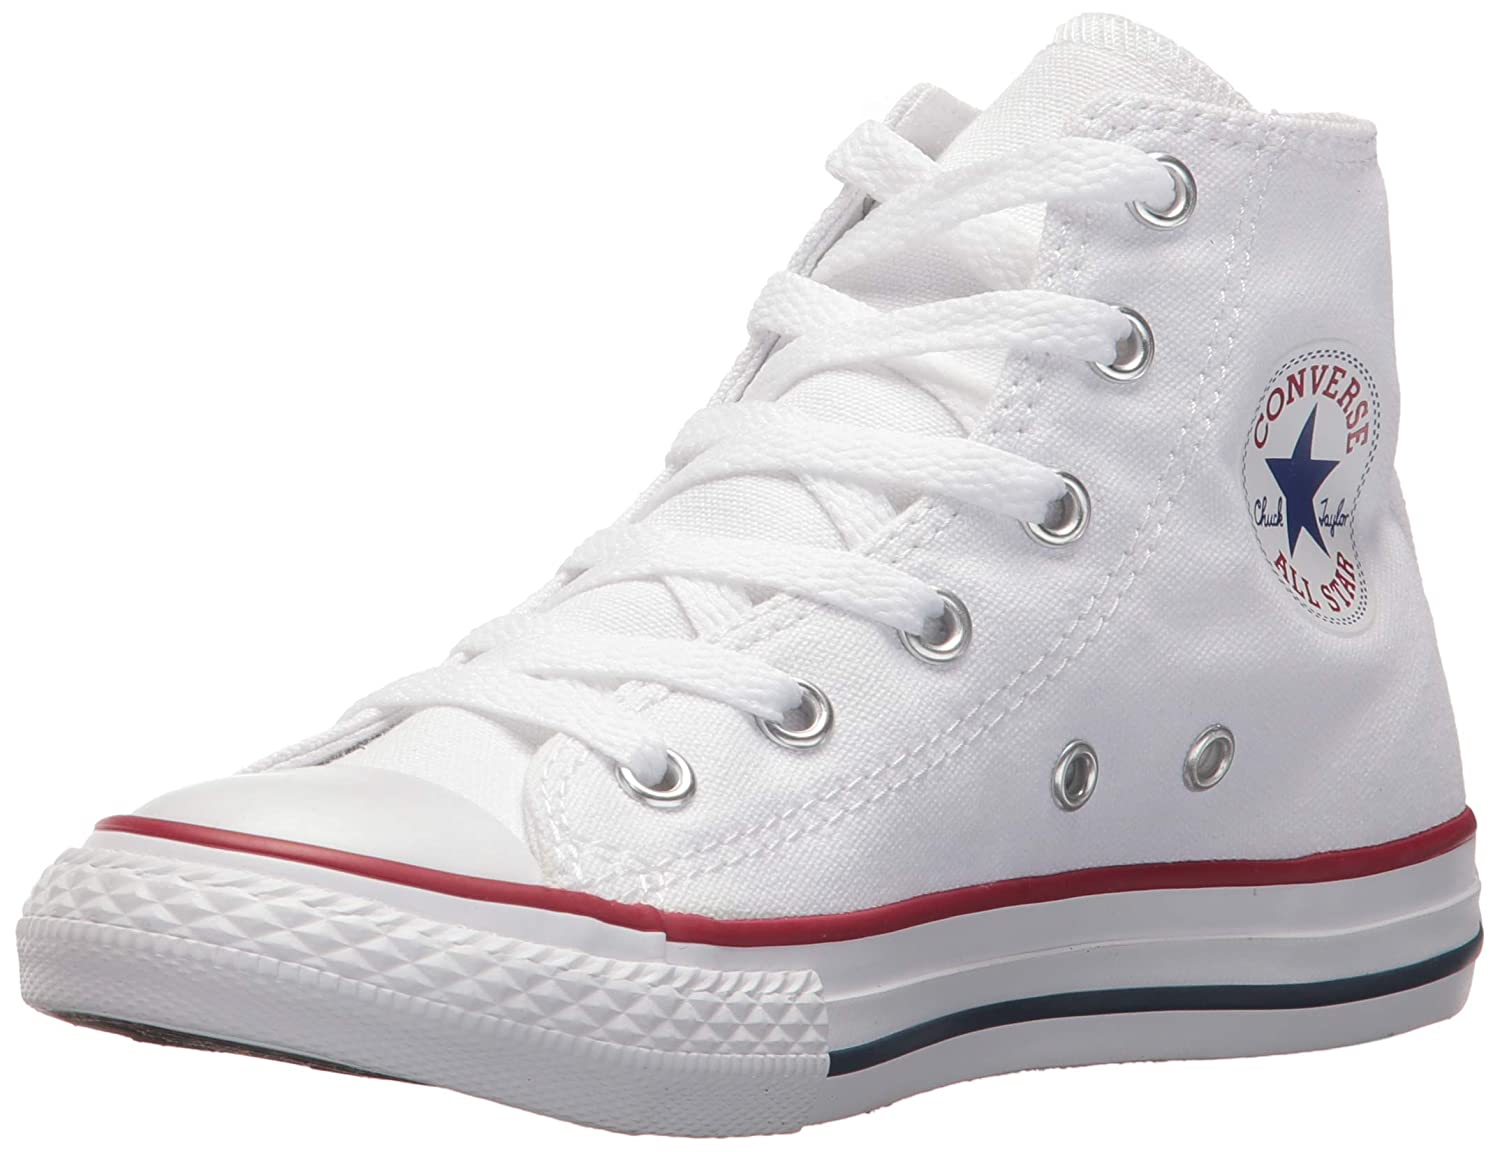 Converse Converse Ctas Core Hi, Baskets adulte Core mode mixte adulte d6e9670 - reprogrammed.space